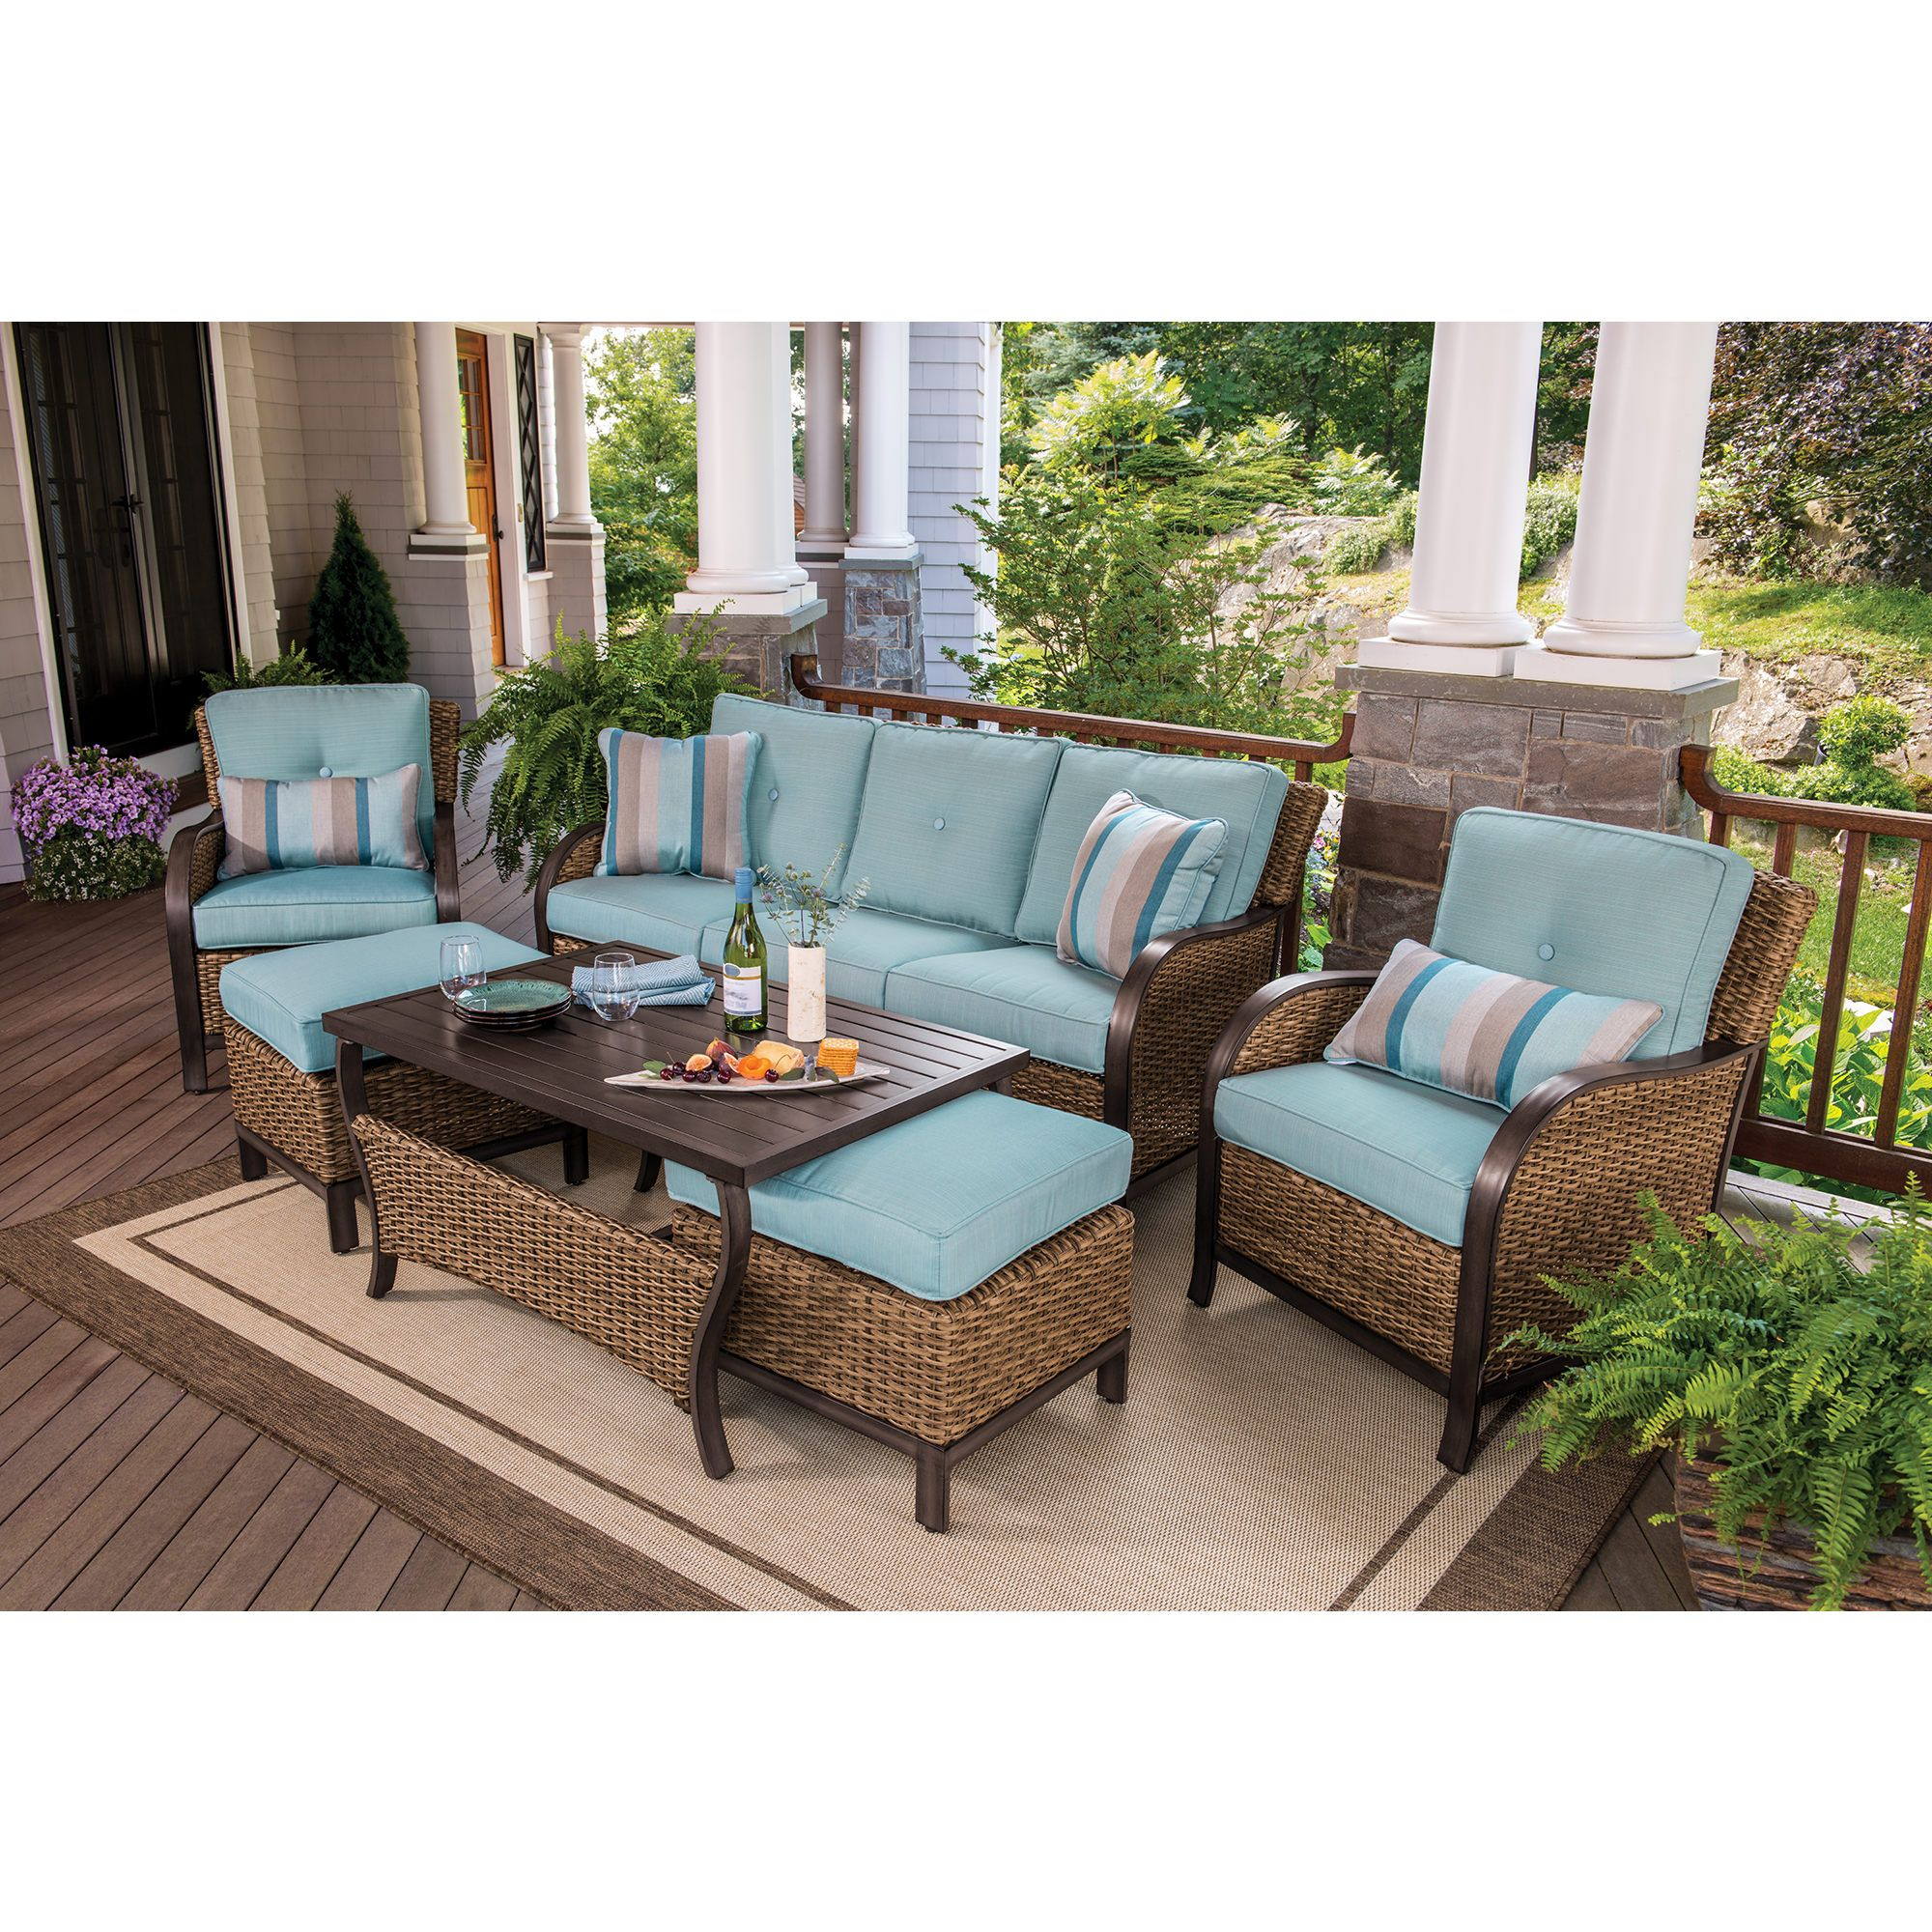 Ordinaire Berkley Jensen Nantucket 6 Piece Wicker Patio Set   BJs Wholesale Club